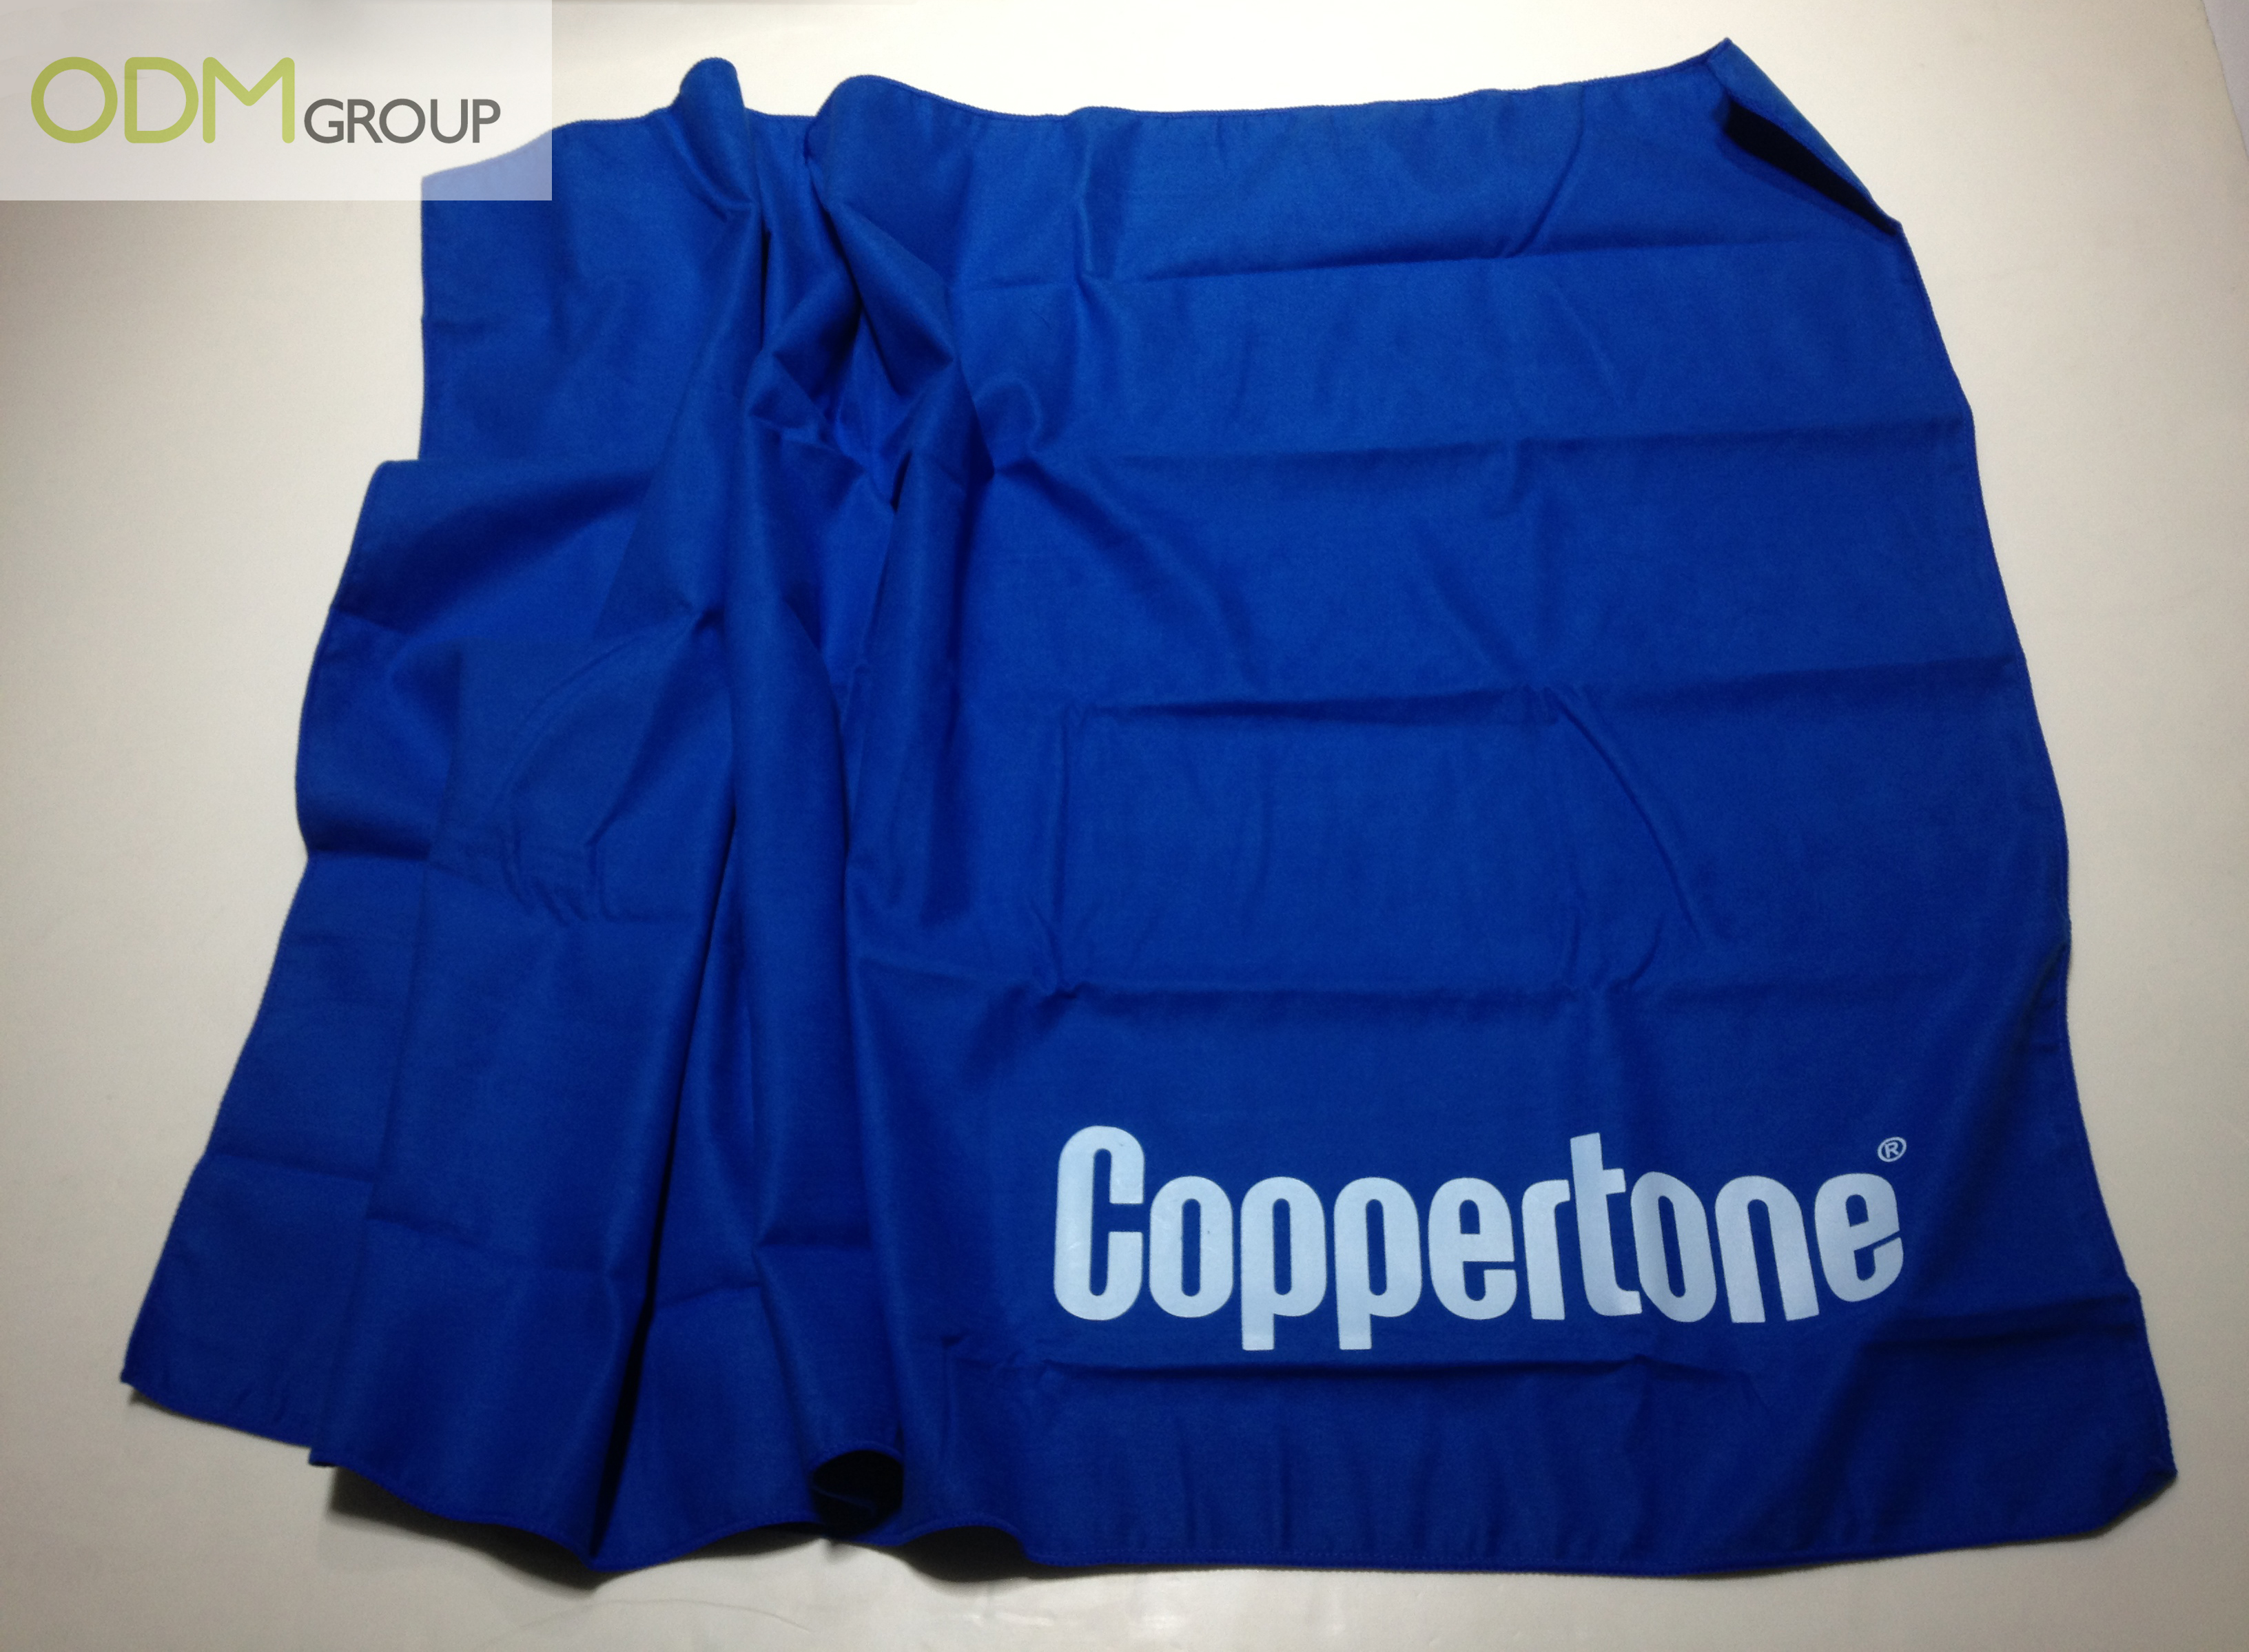 Coppertone's Branded Beach Towels